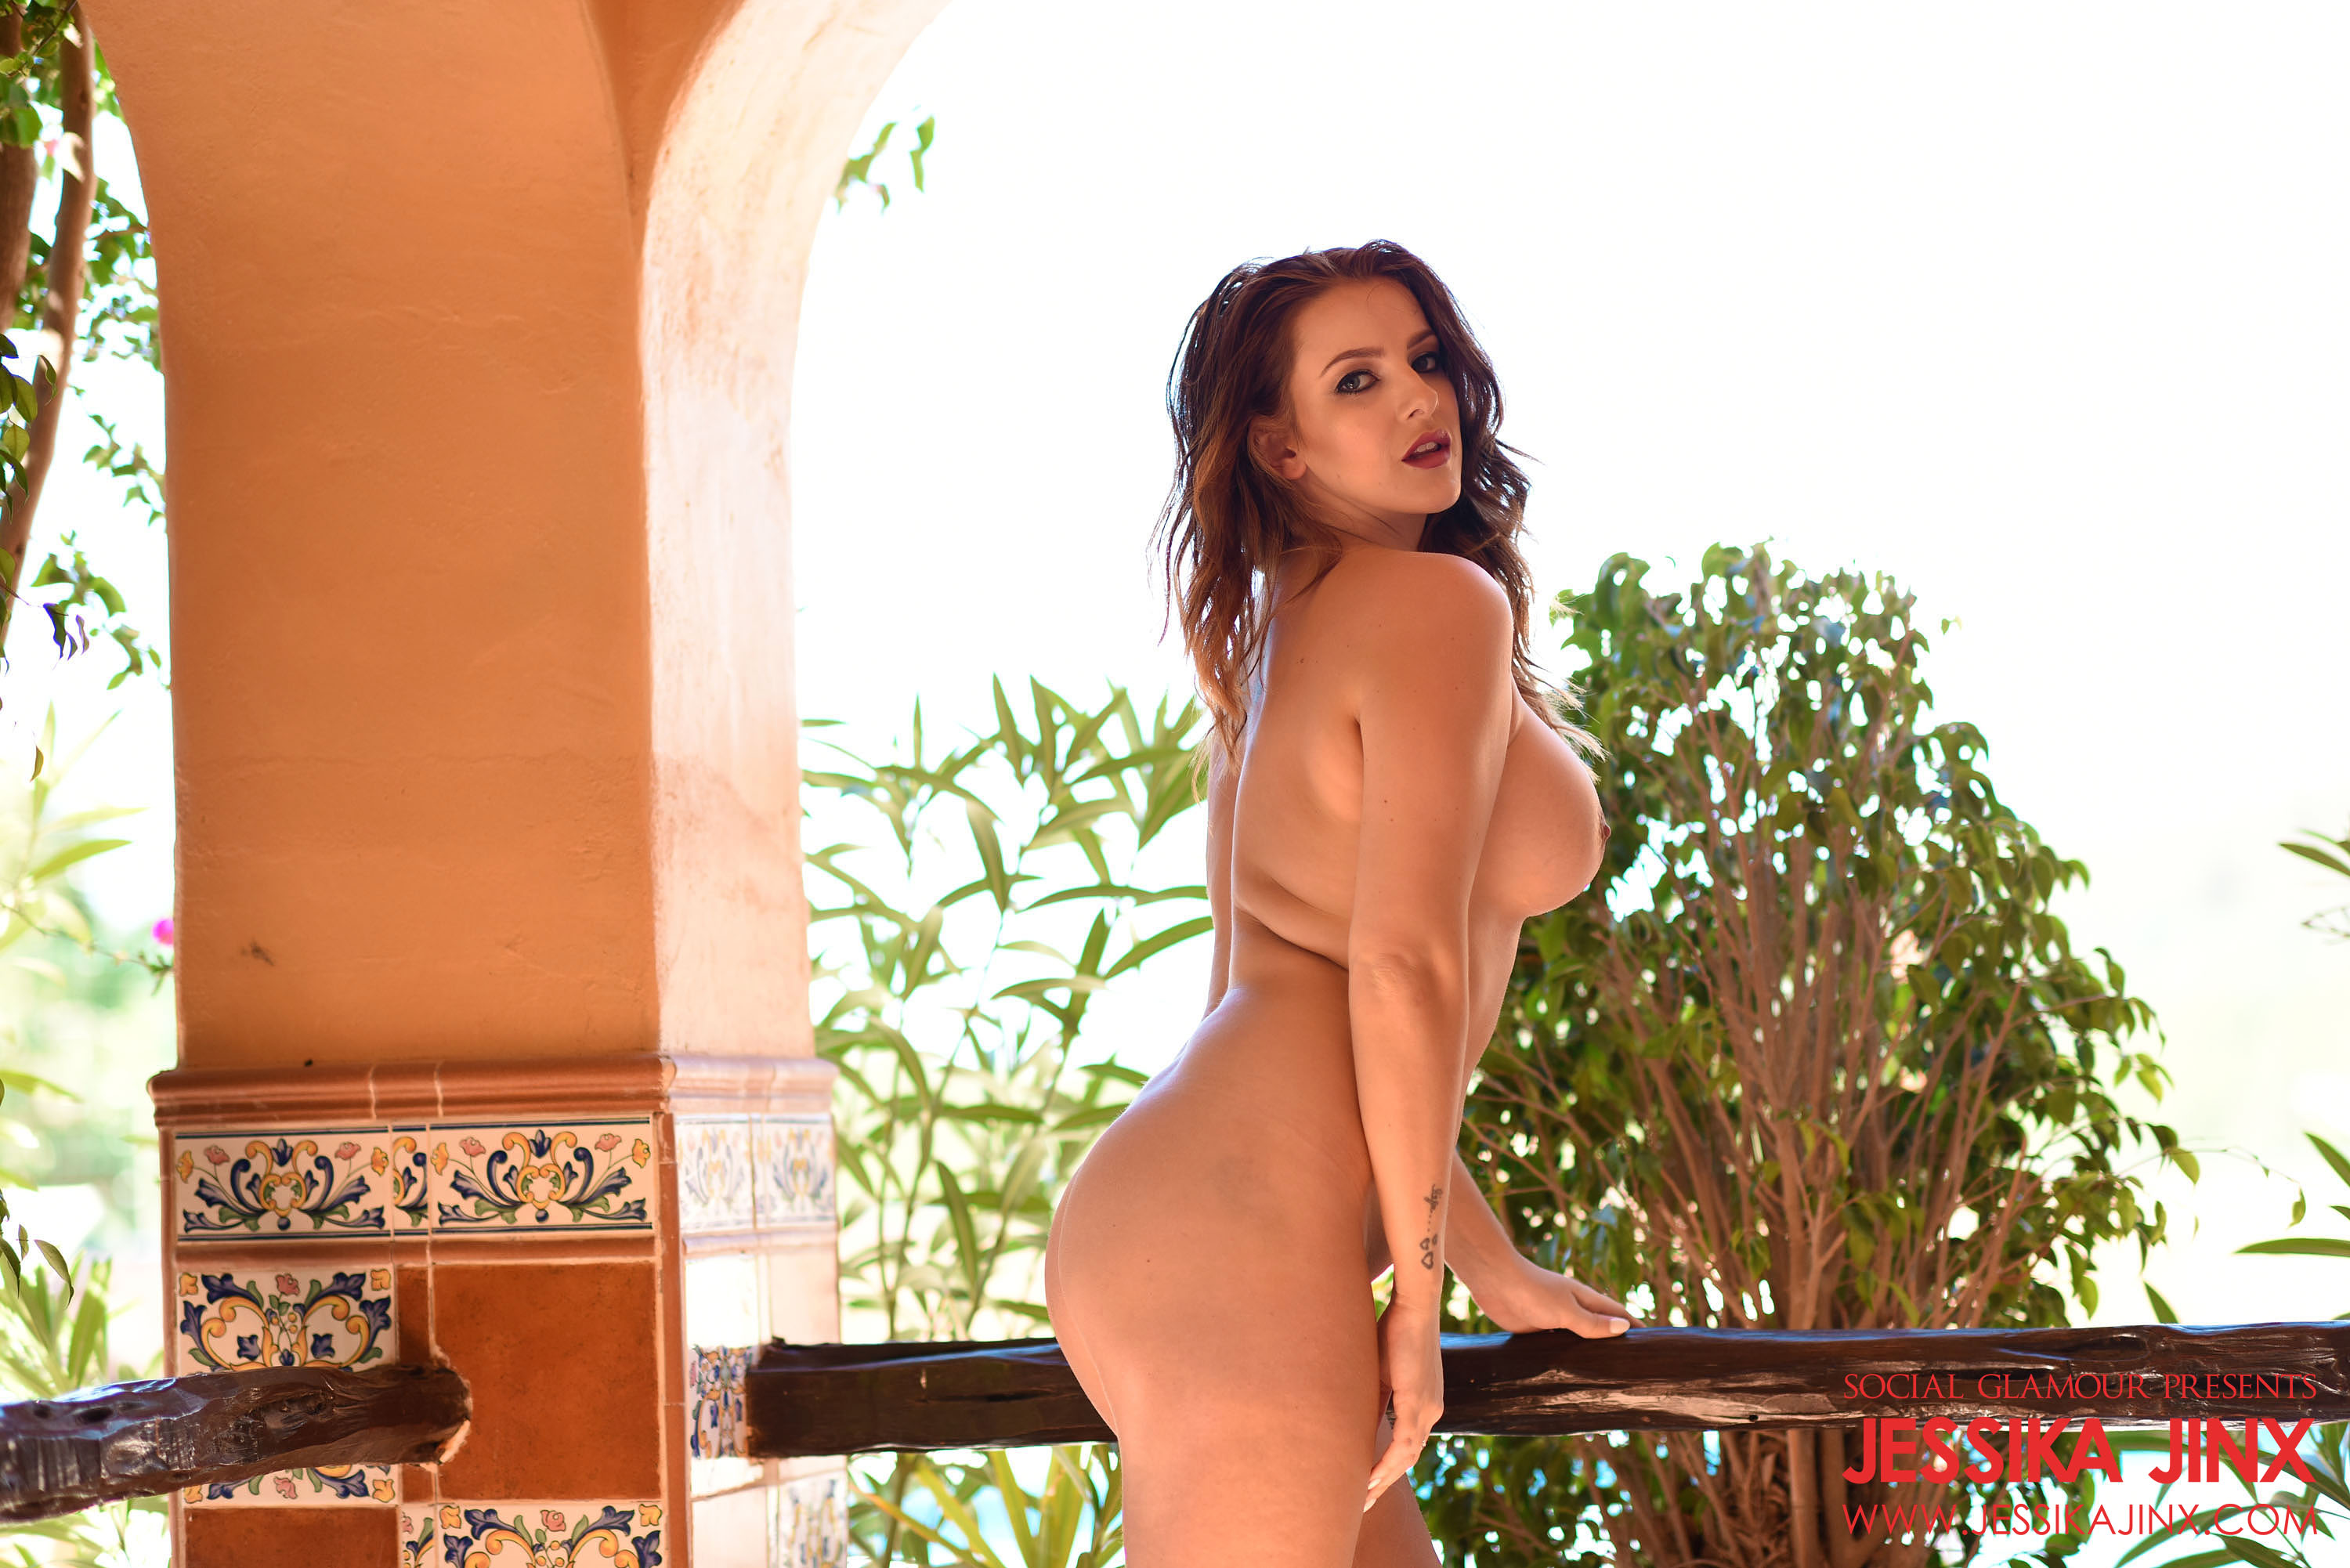 Curvy glamour model Jessika Jinx removes her silk panties and goes full nude